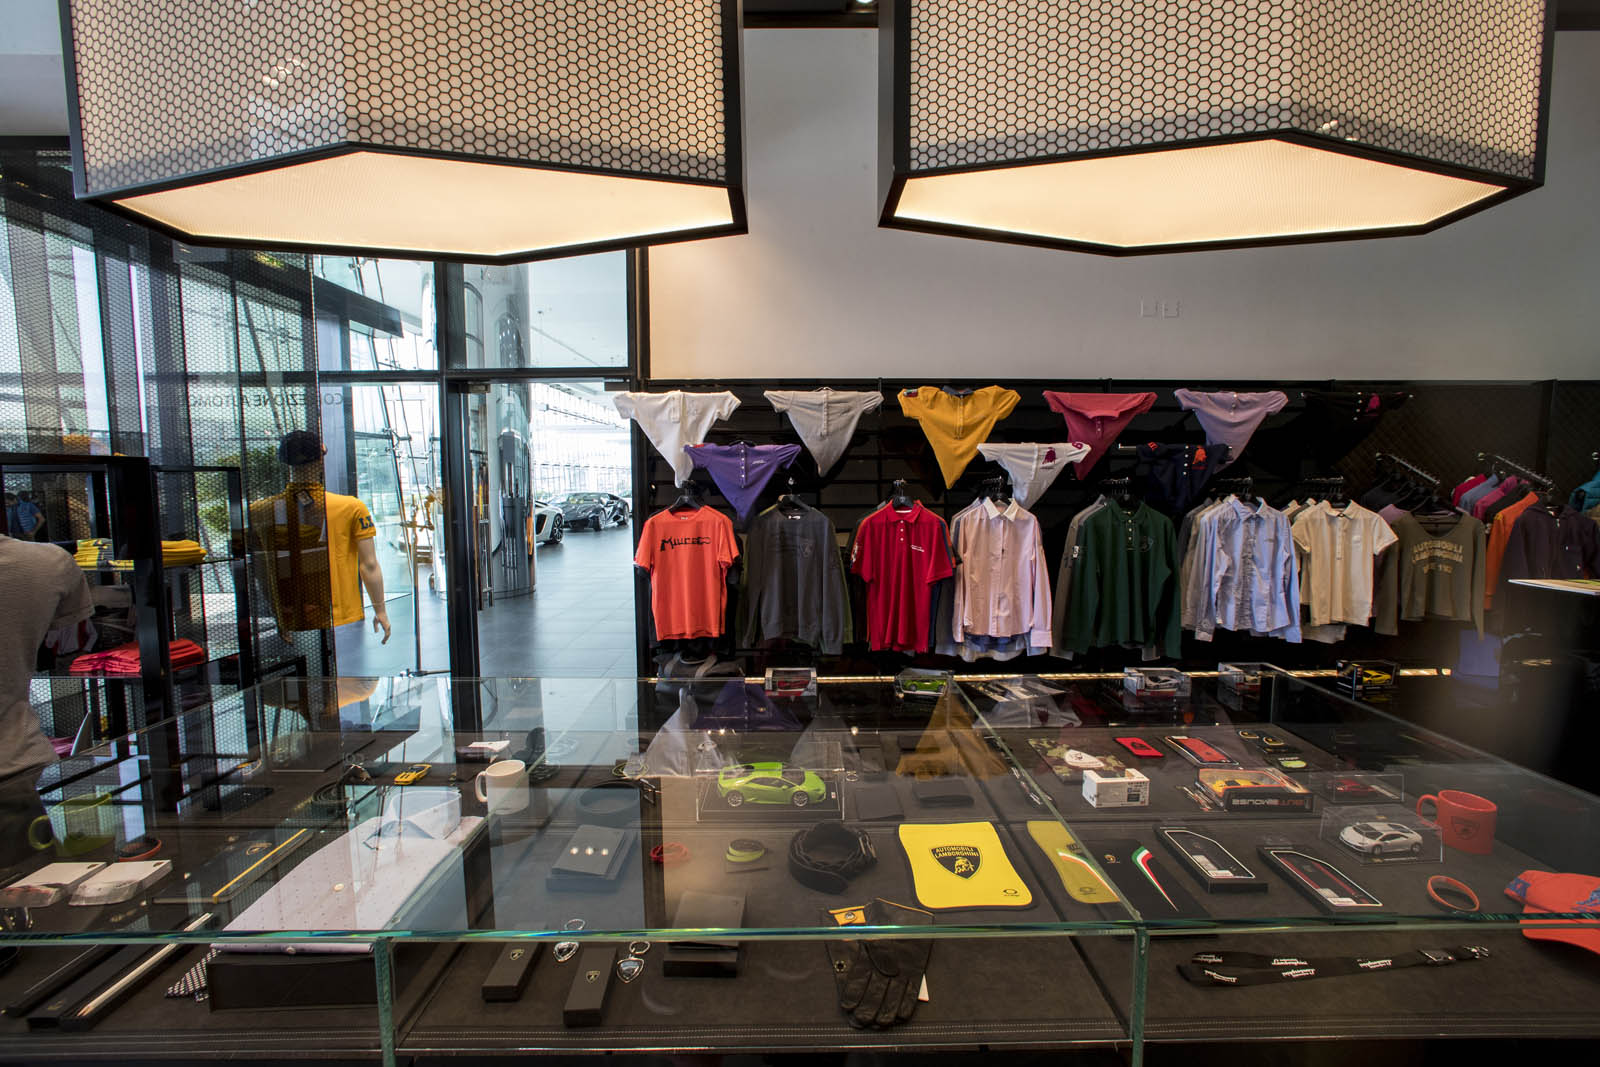 Dealers Of Clothes In Dubai Mail: Lamborghini Just Opened Its Largest Showroom Yet